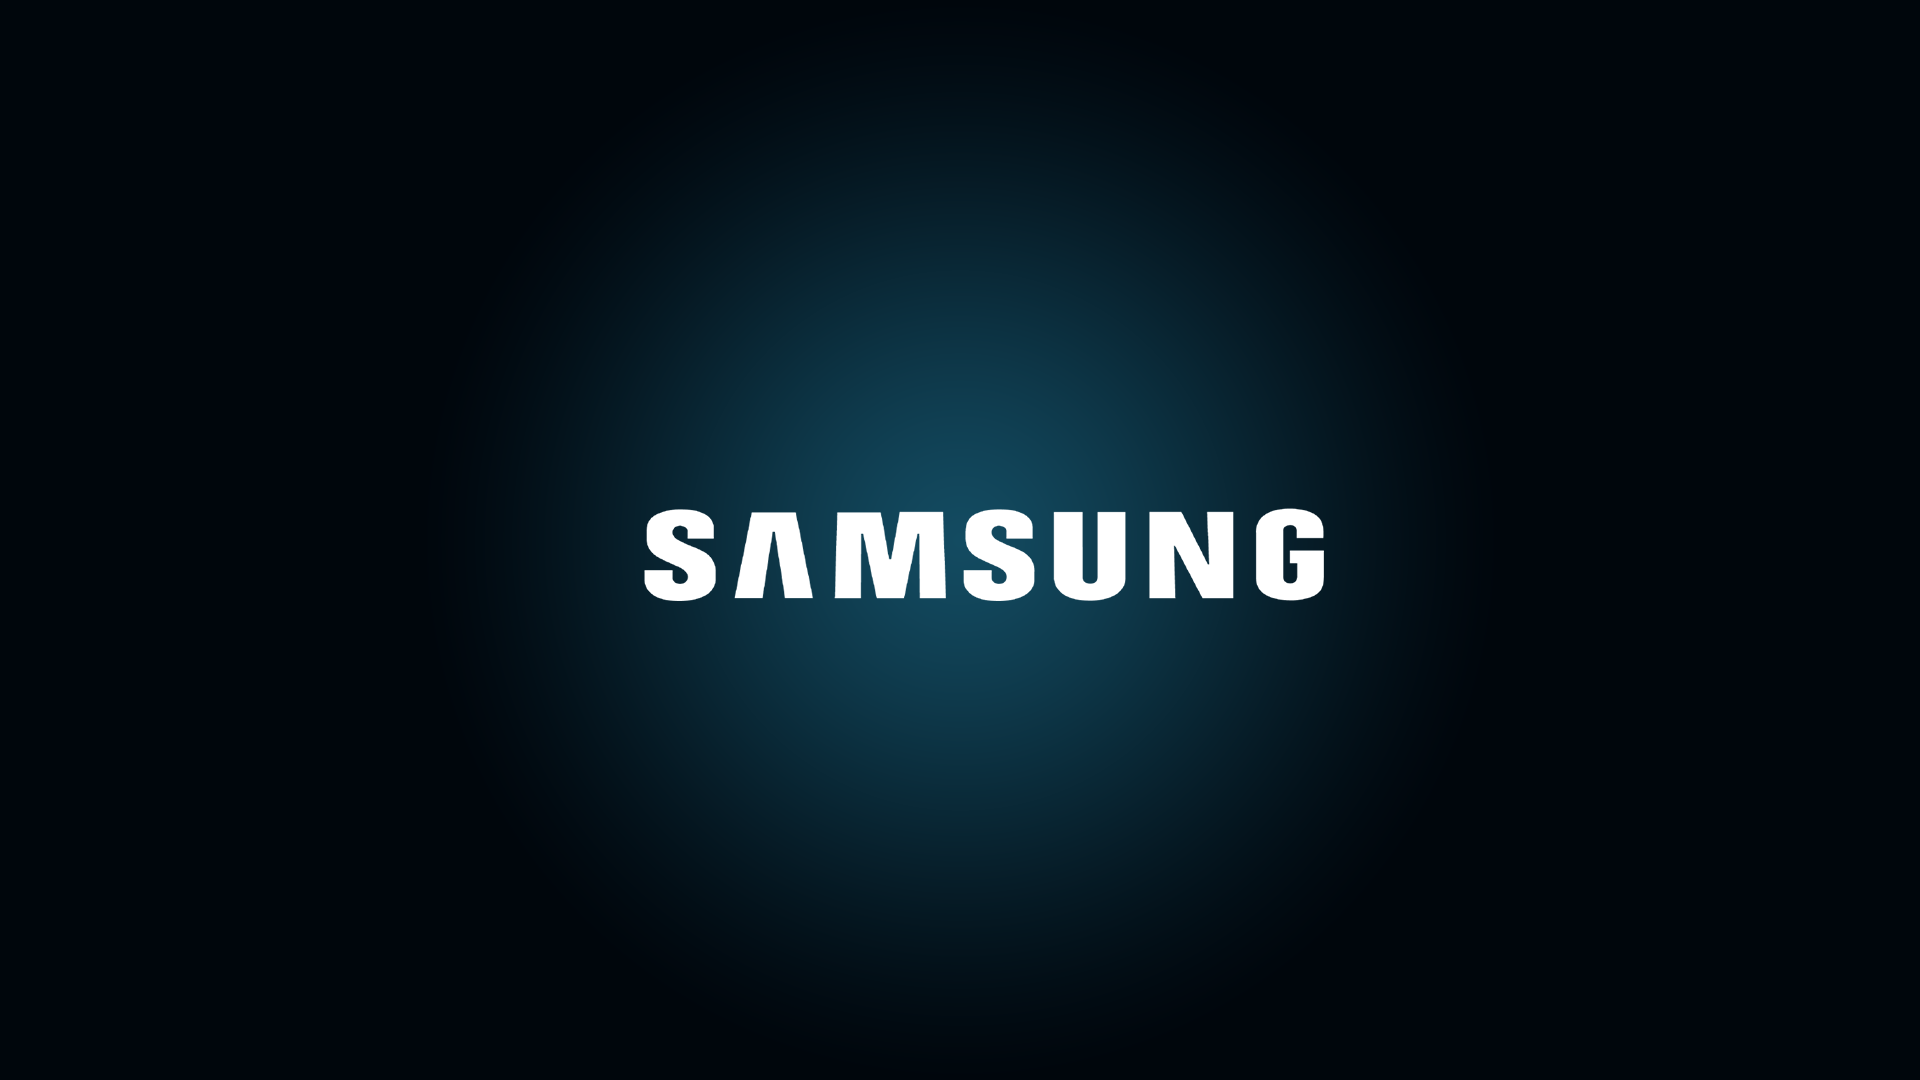 samsung wallpaper j8: Samsung Galaxy S5 Flaw Allows Hackers To Duplicate